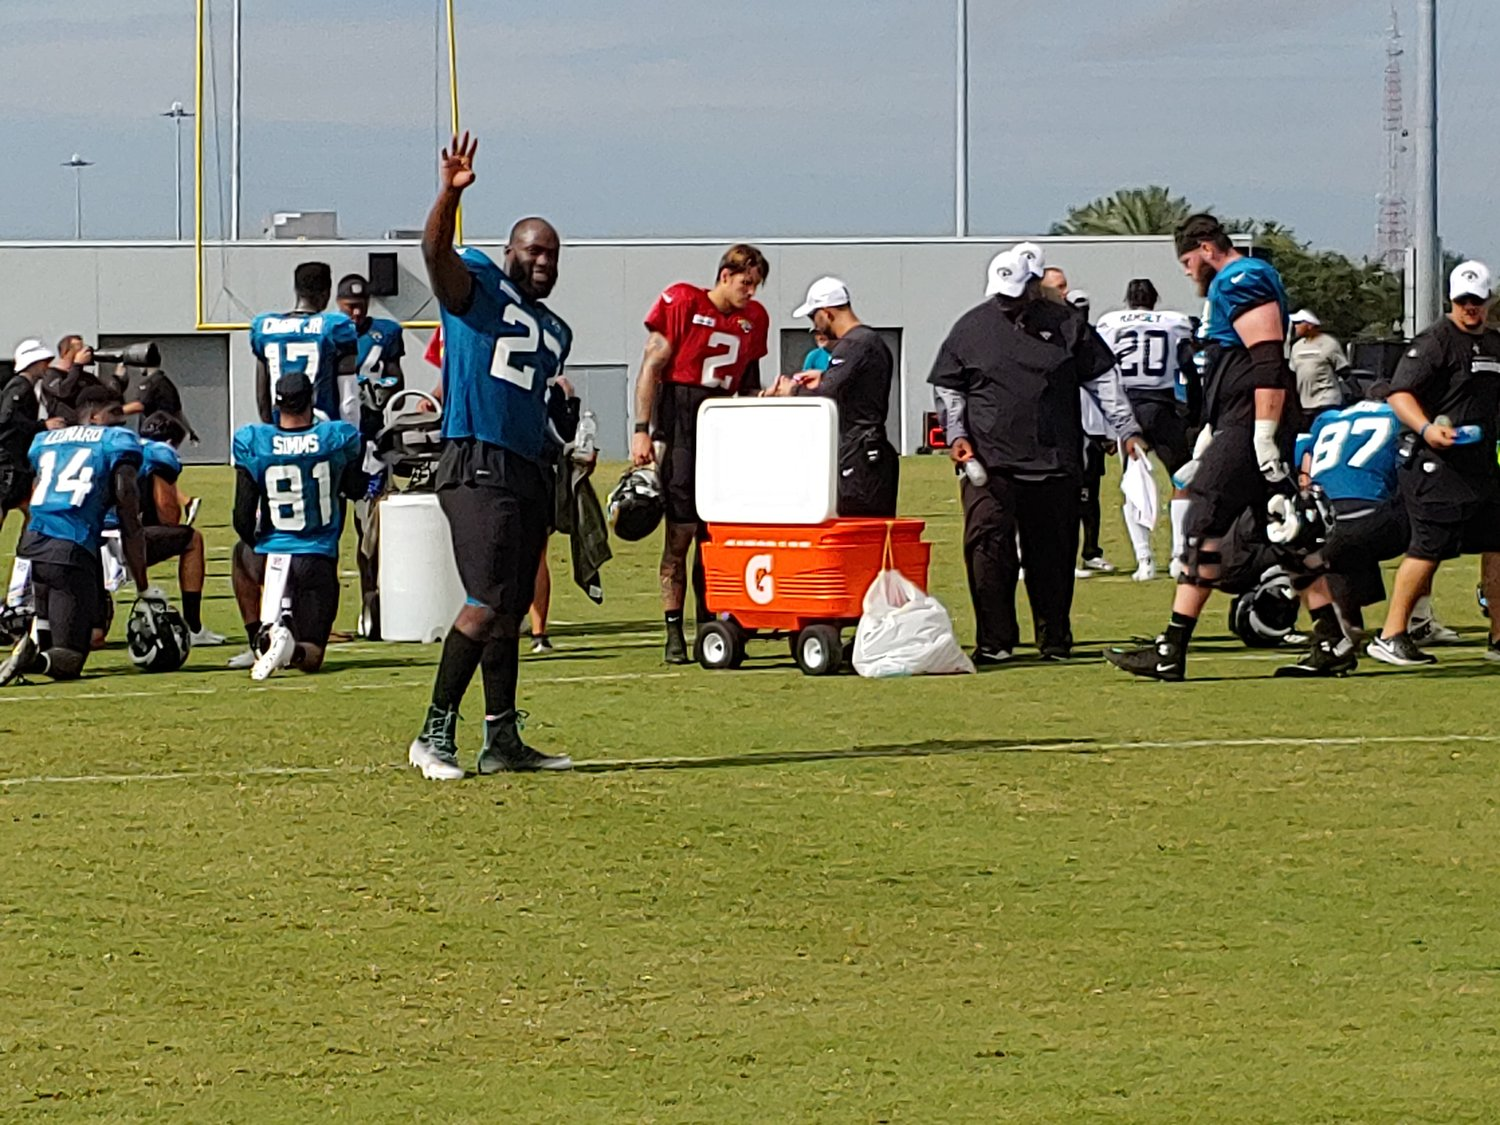 Jacksonville Jaguars RB, Leanard Fournette, waves to the crowd during practice.